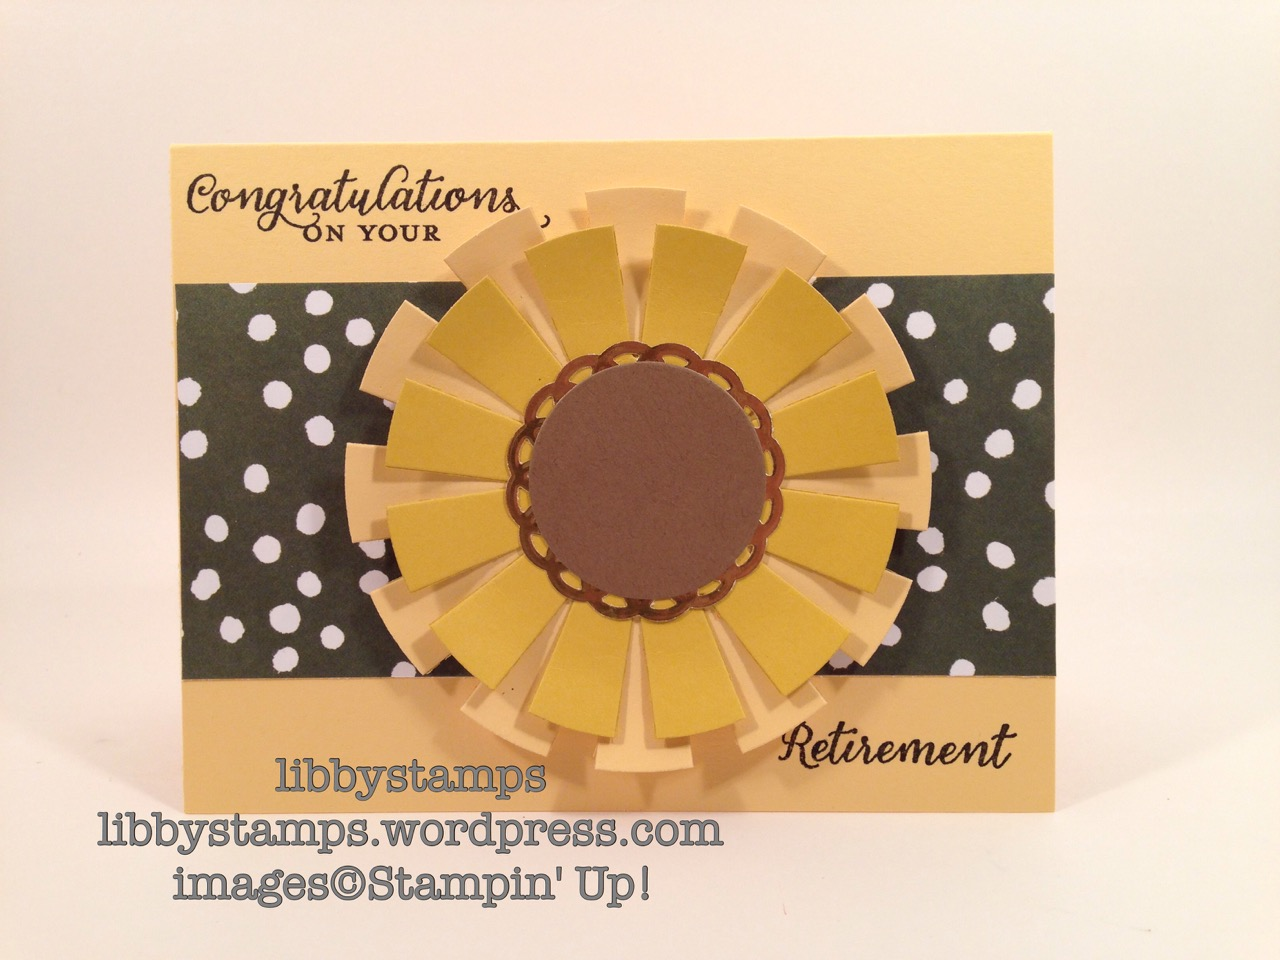 libbystamps, stampin up, Wild About Flowers, English Garden, Sunburst Thinlits, Circles Collection Framelits, Metallic Foil Doilies, Retirement